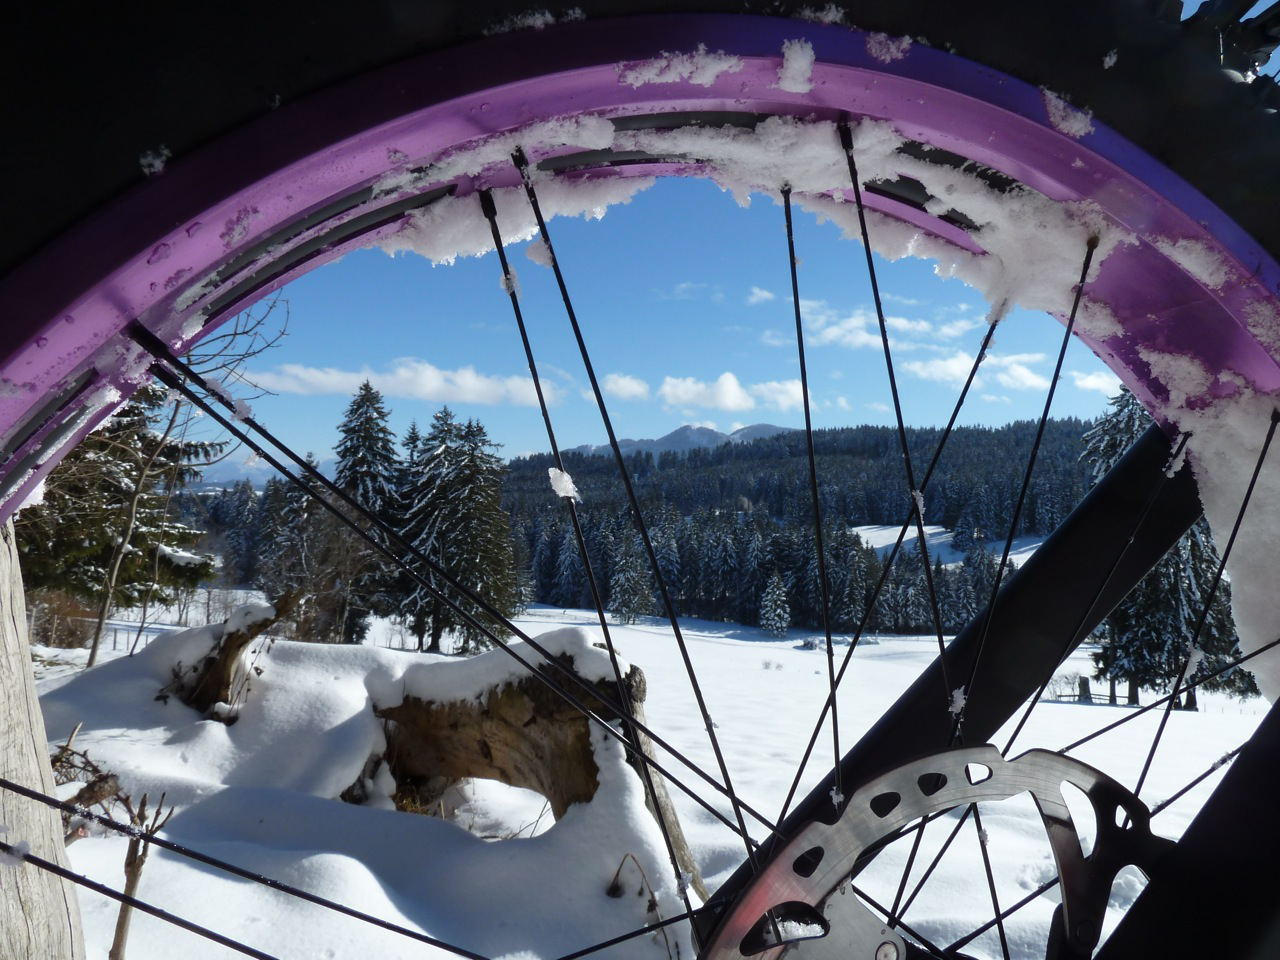 fatbike 90c icancycling